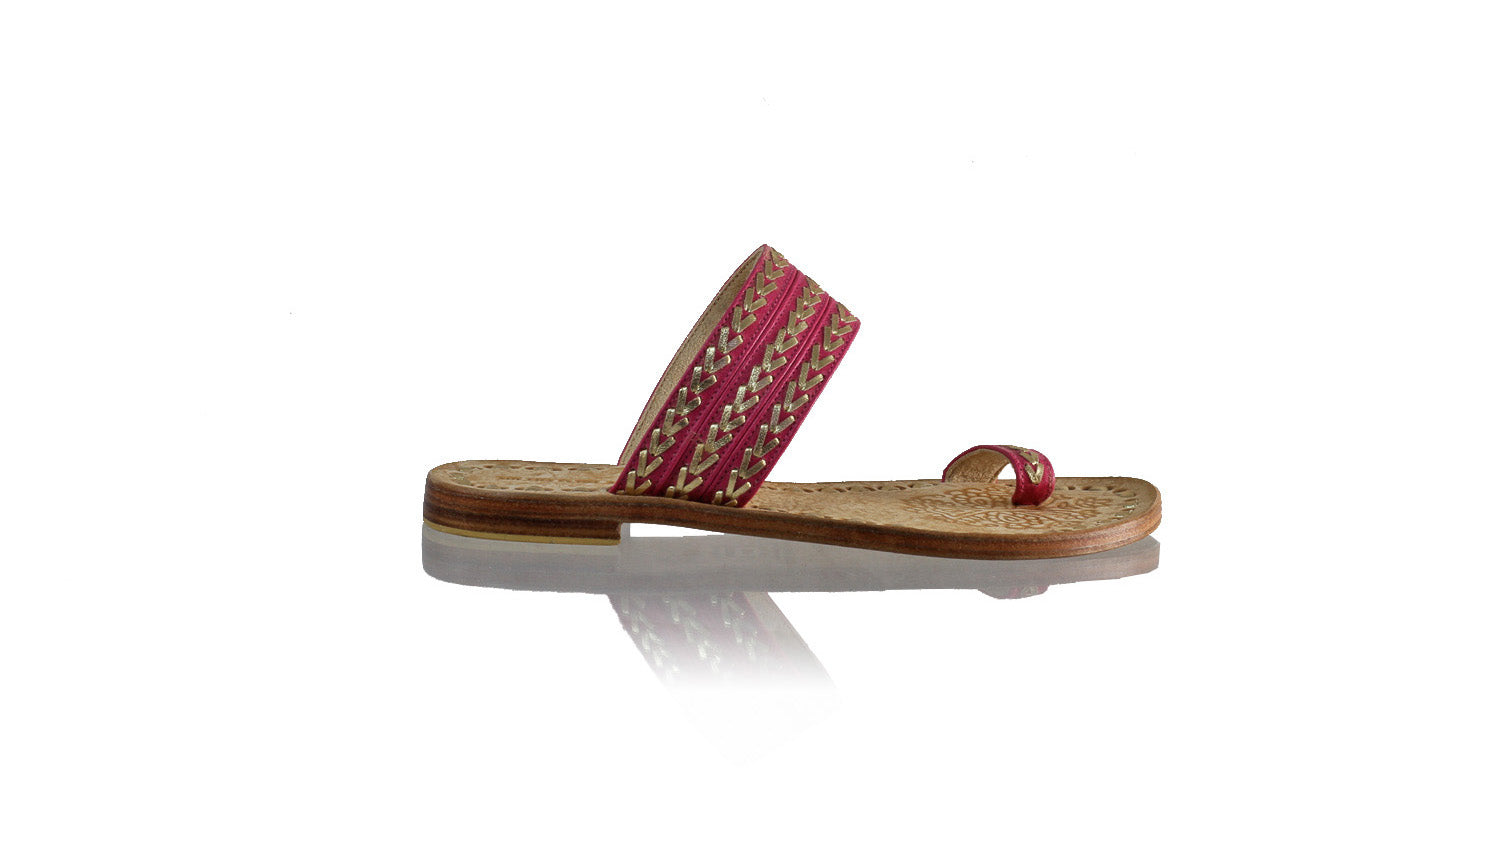 Leather-shoes-Merauke 20mm Flat - Fuschia & Gold-sandals flat-NILUH DJELANTIK-NILUH DJELANTIK